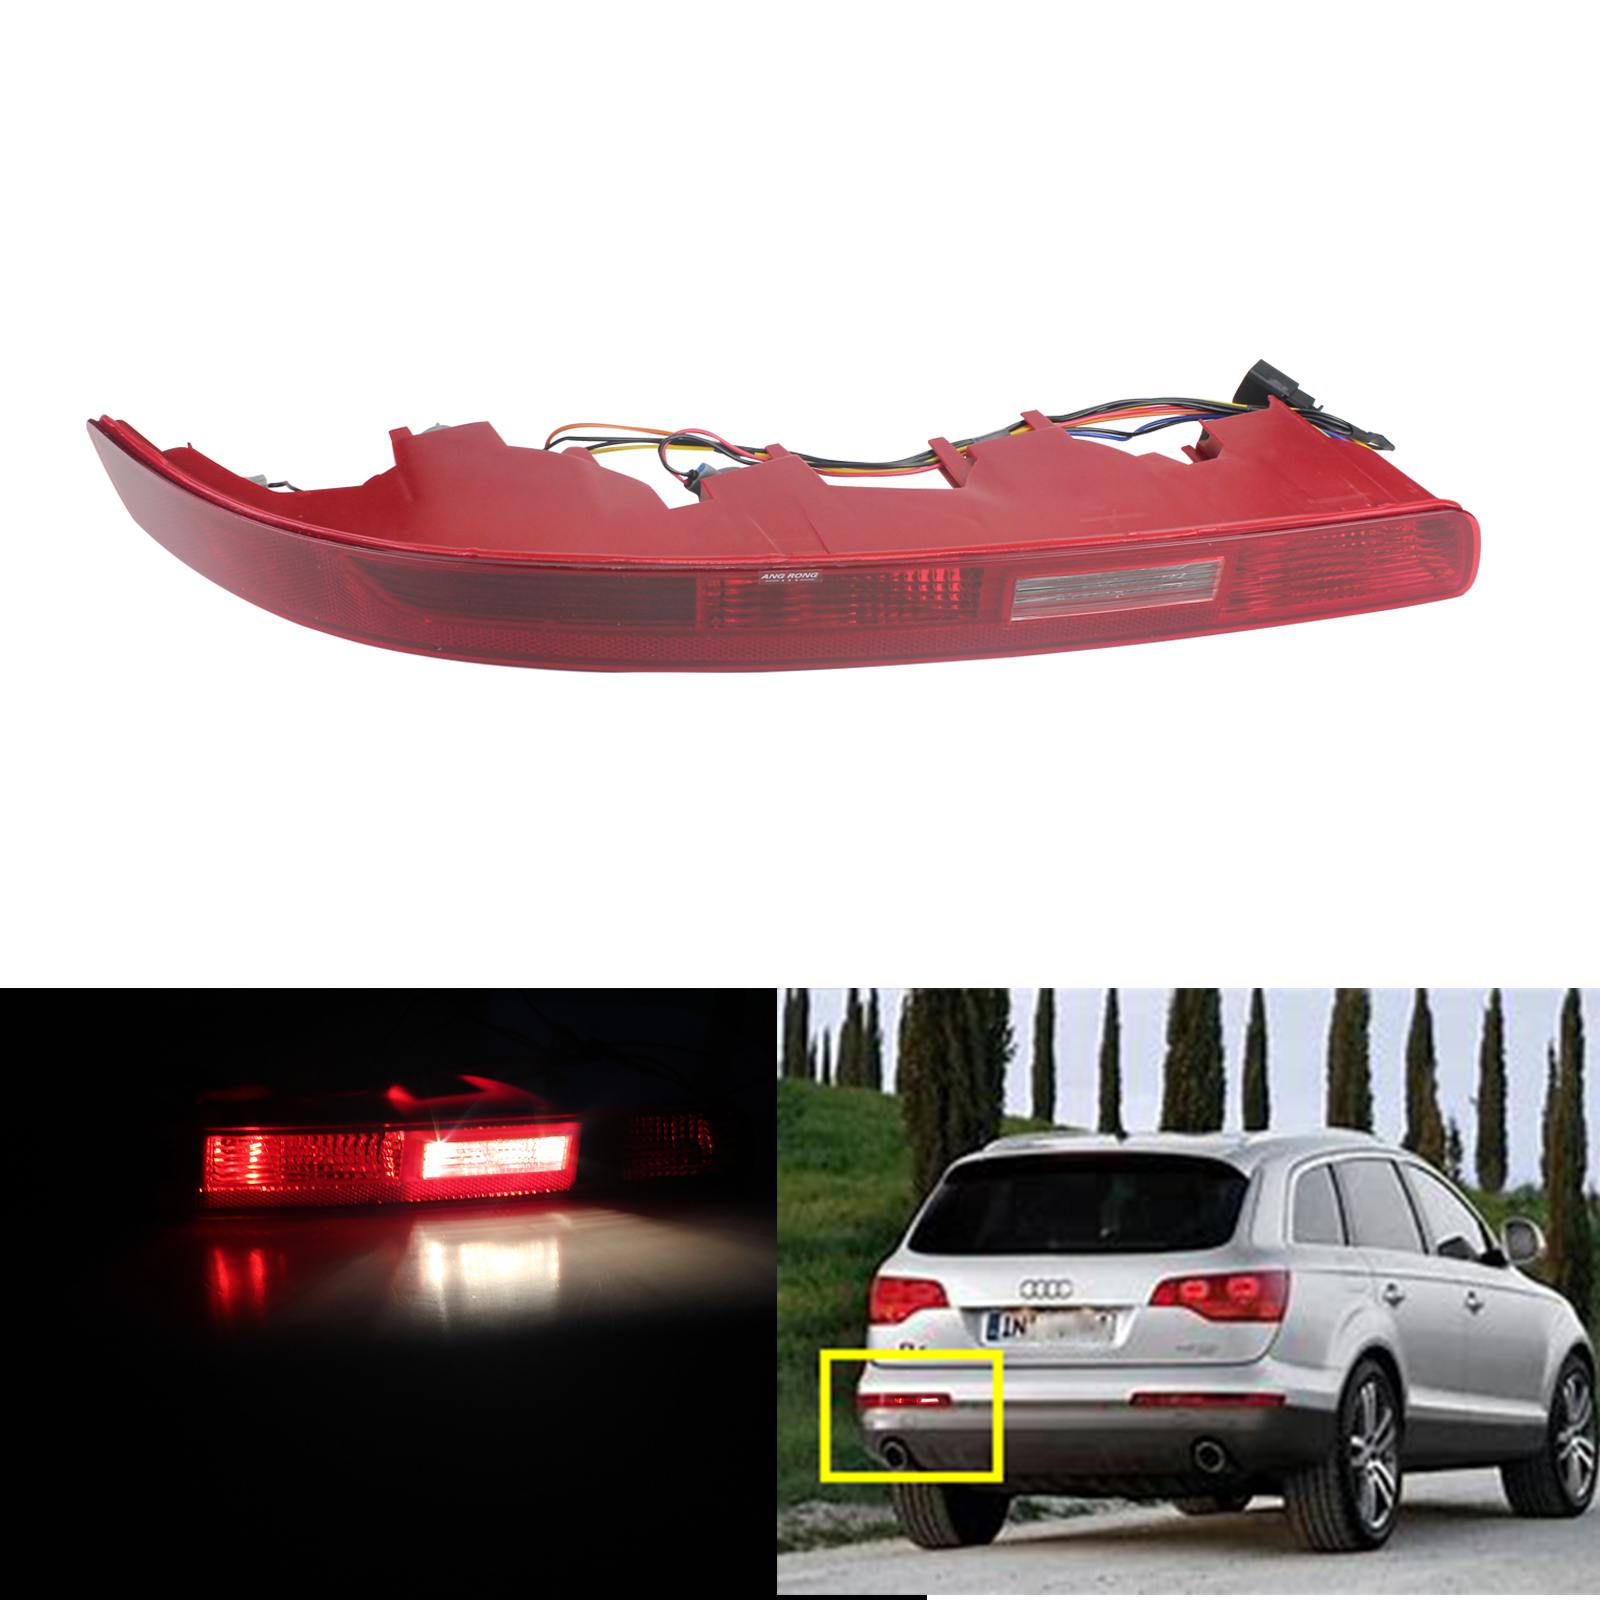 ANGRONG For Audi Q7 4L 2006 15 Rear Bumper Reflector Reverse Brake Stop Light Lamp Left